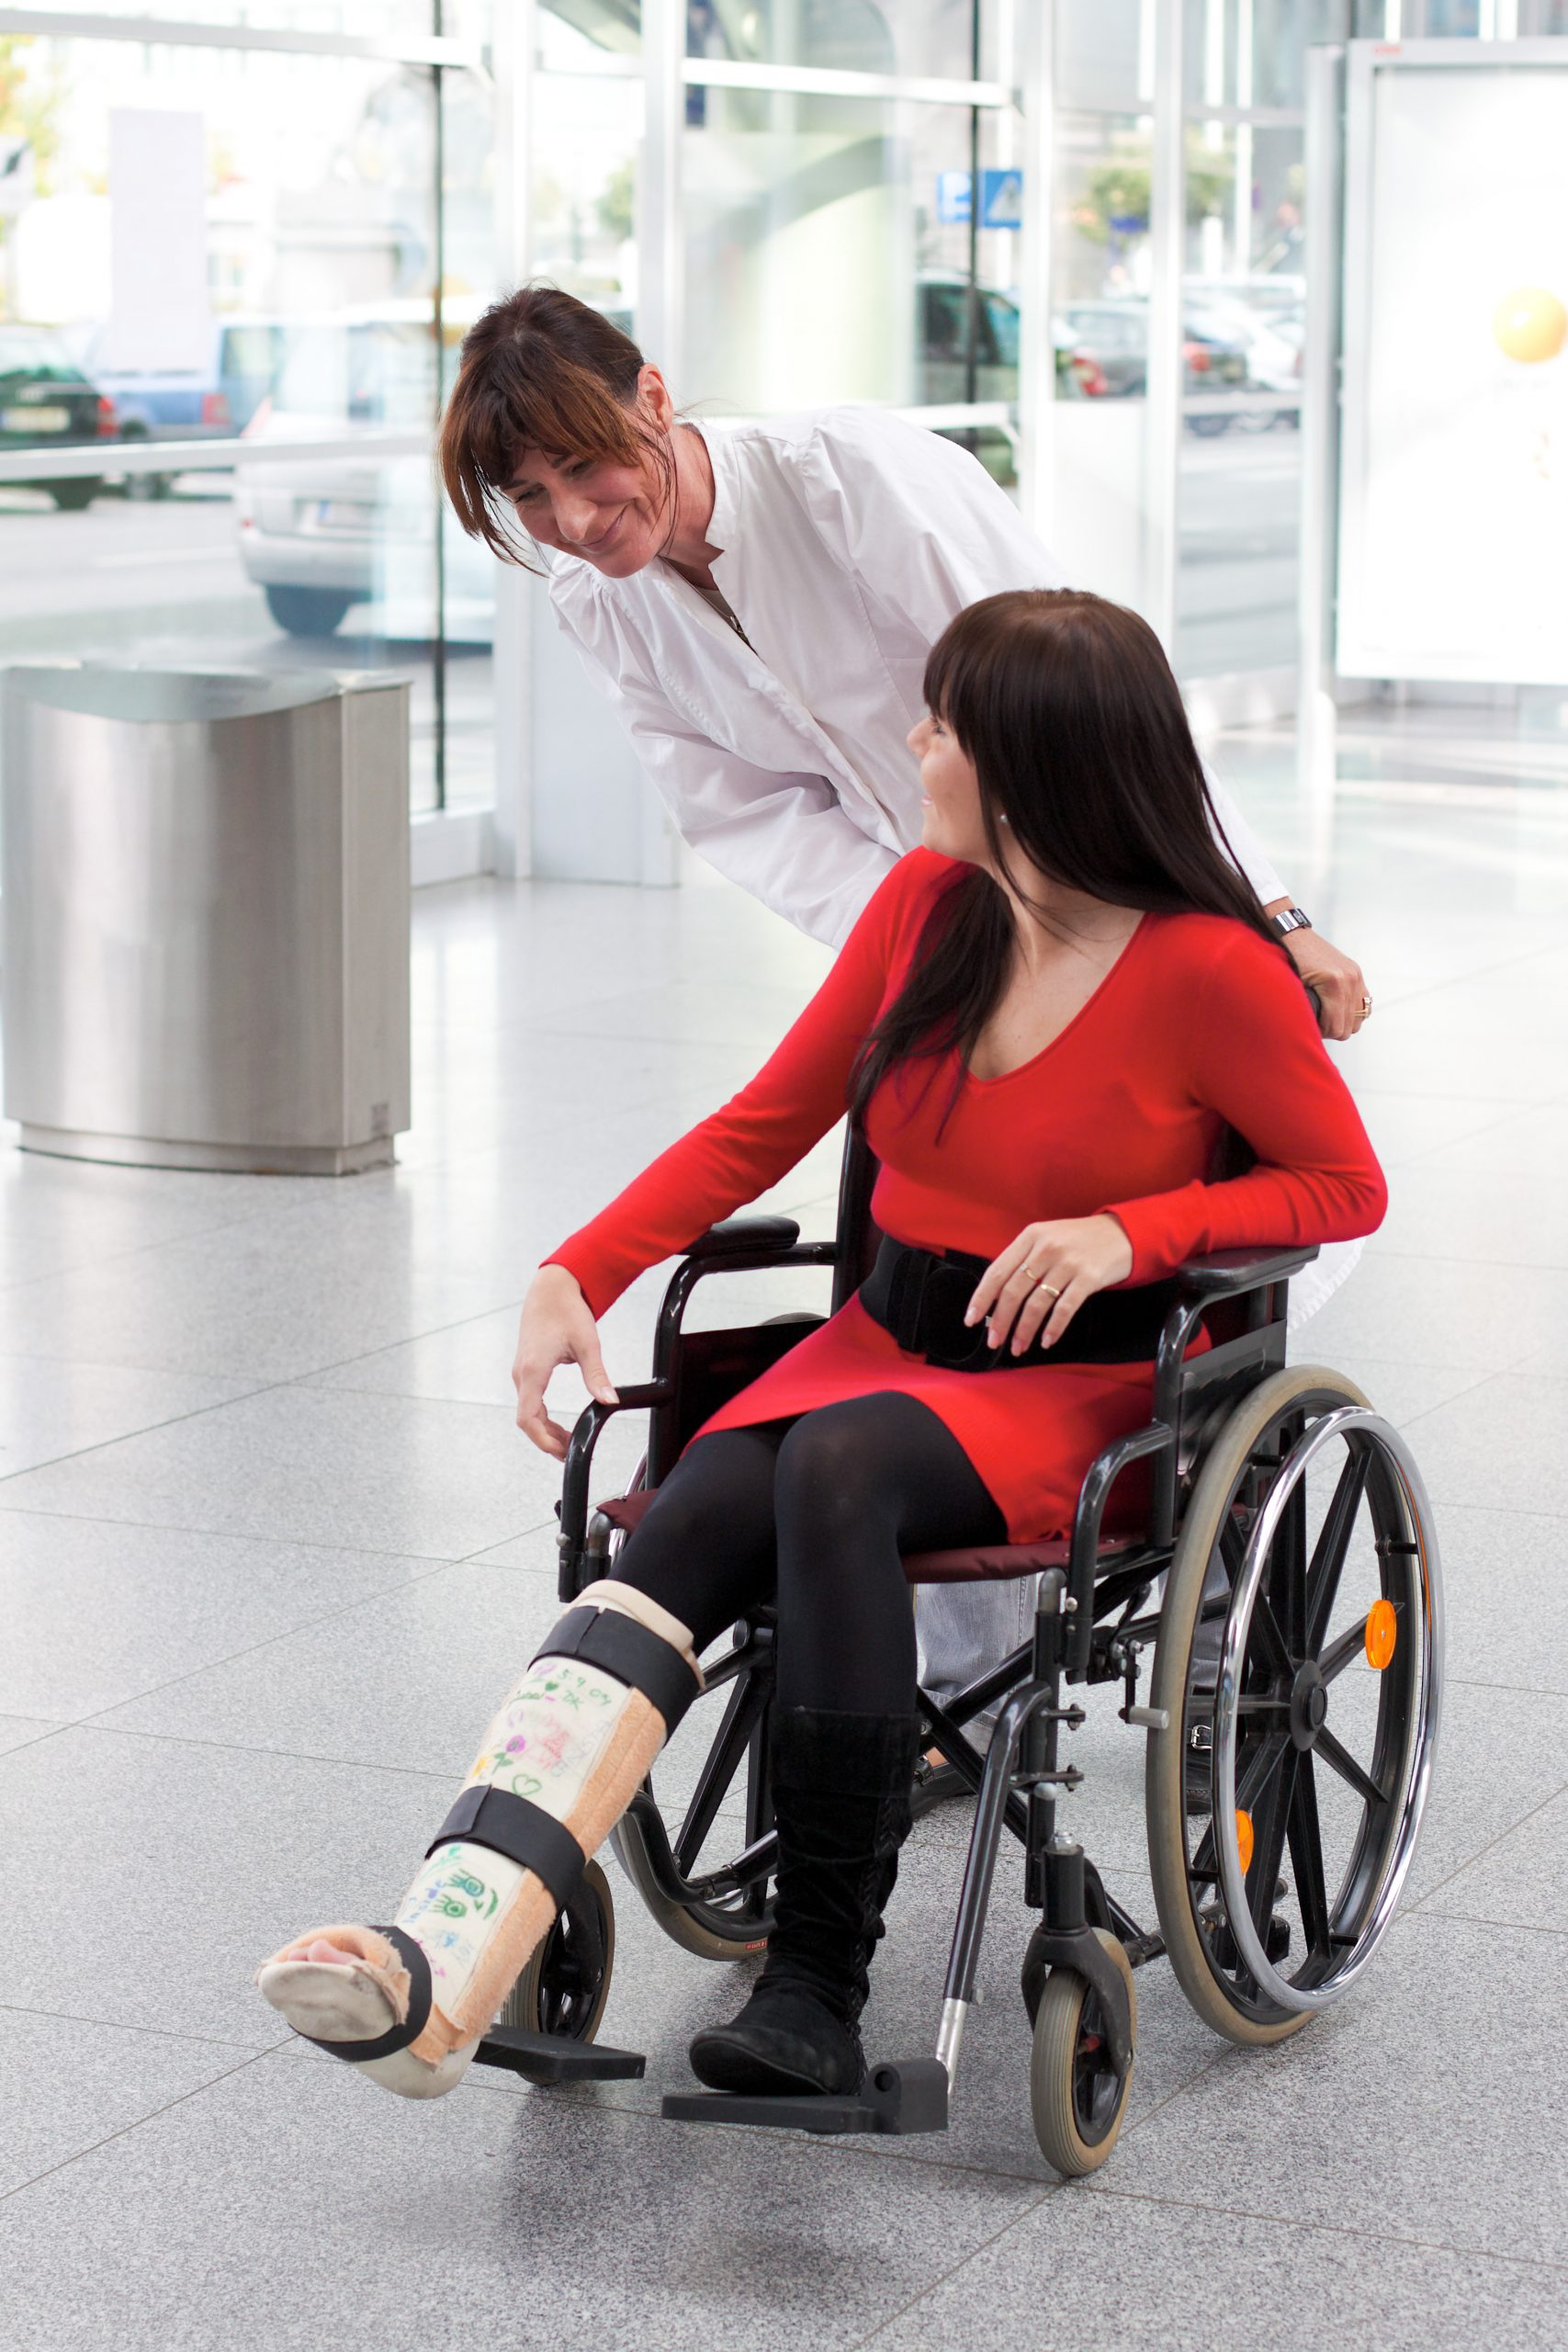 Dallas accident lawyers